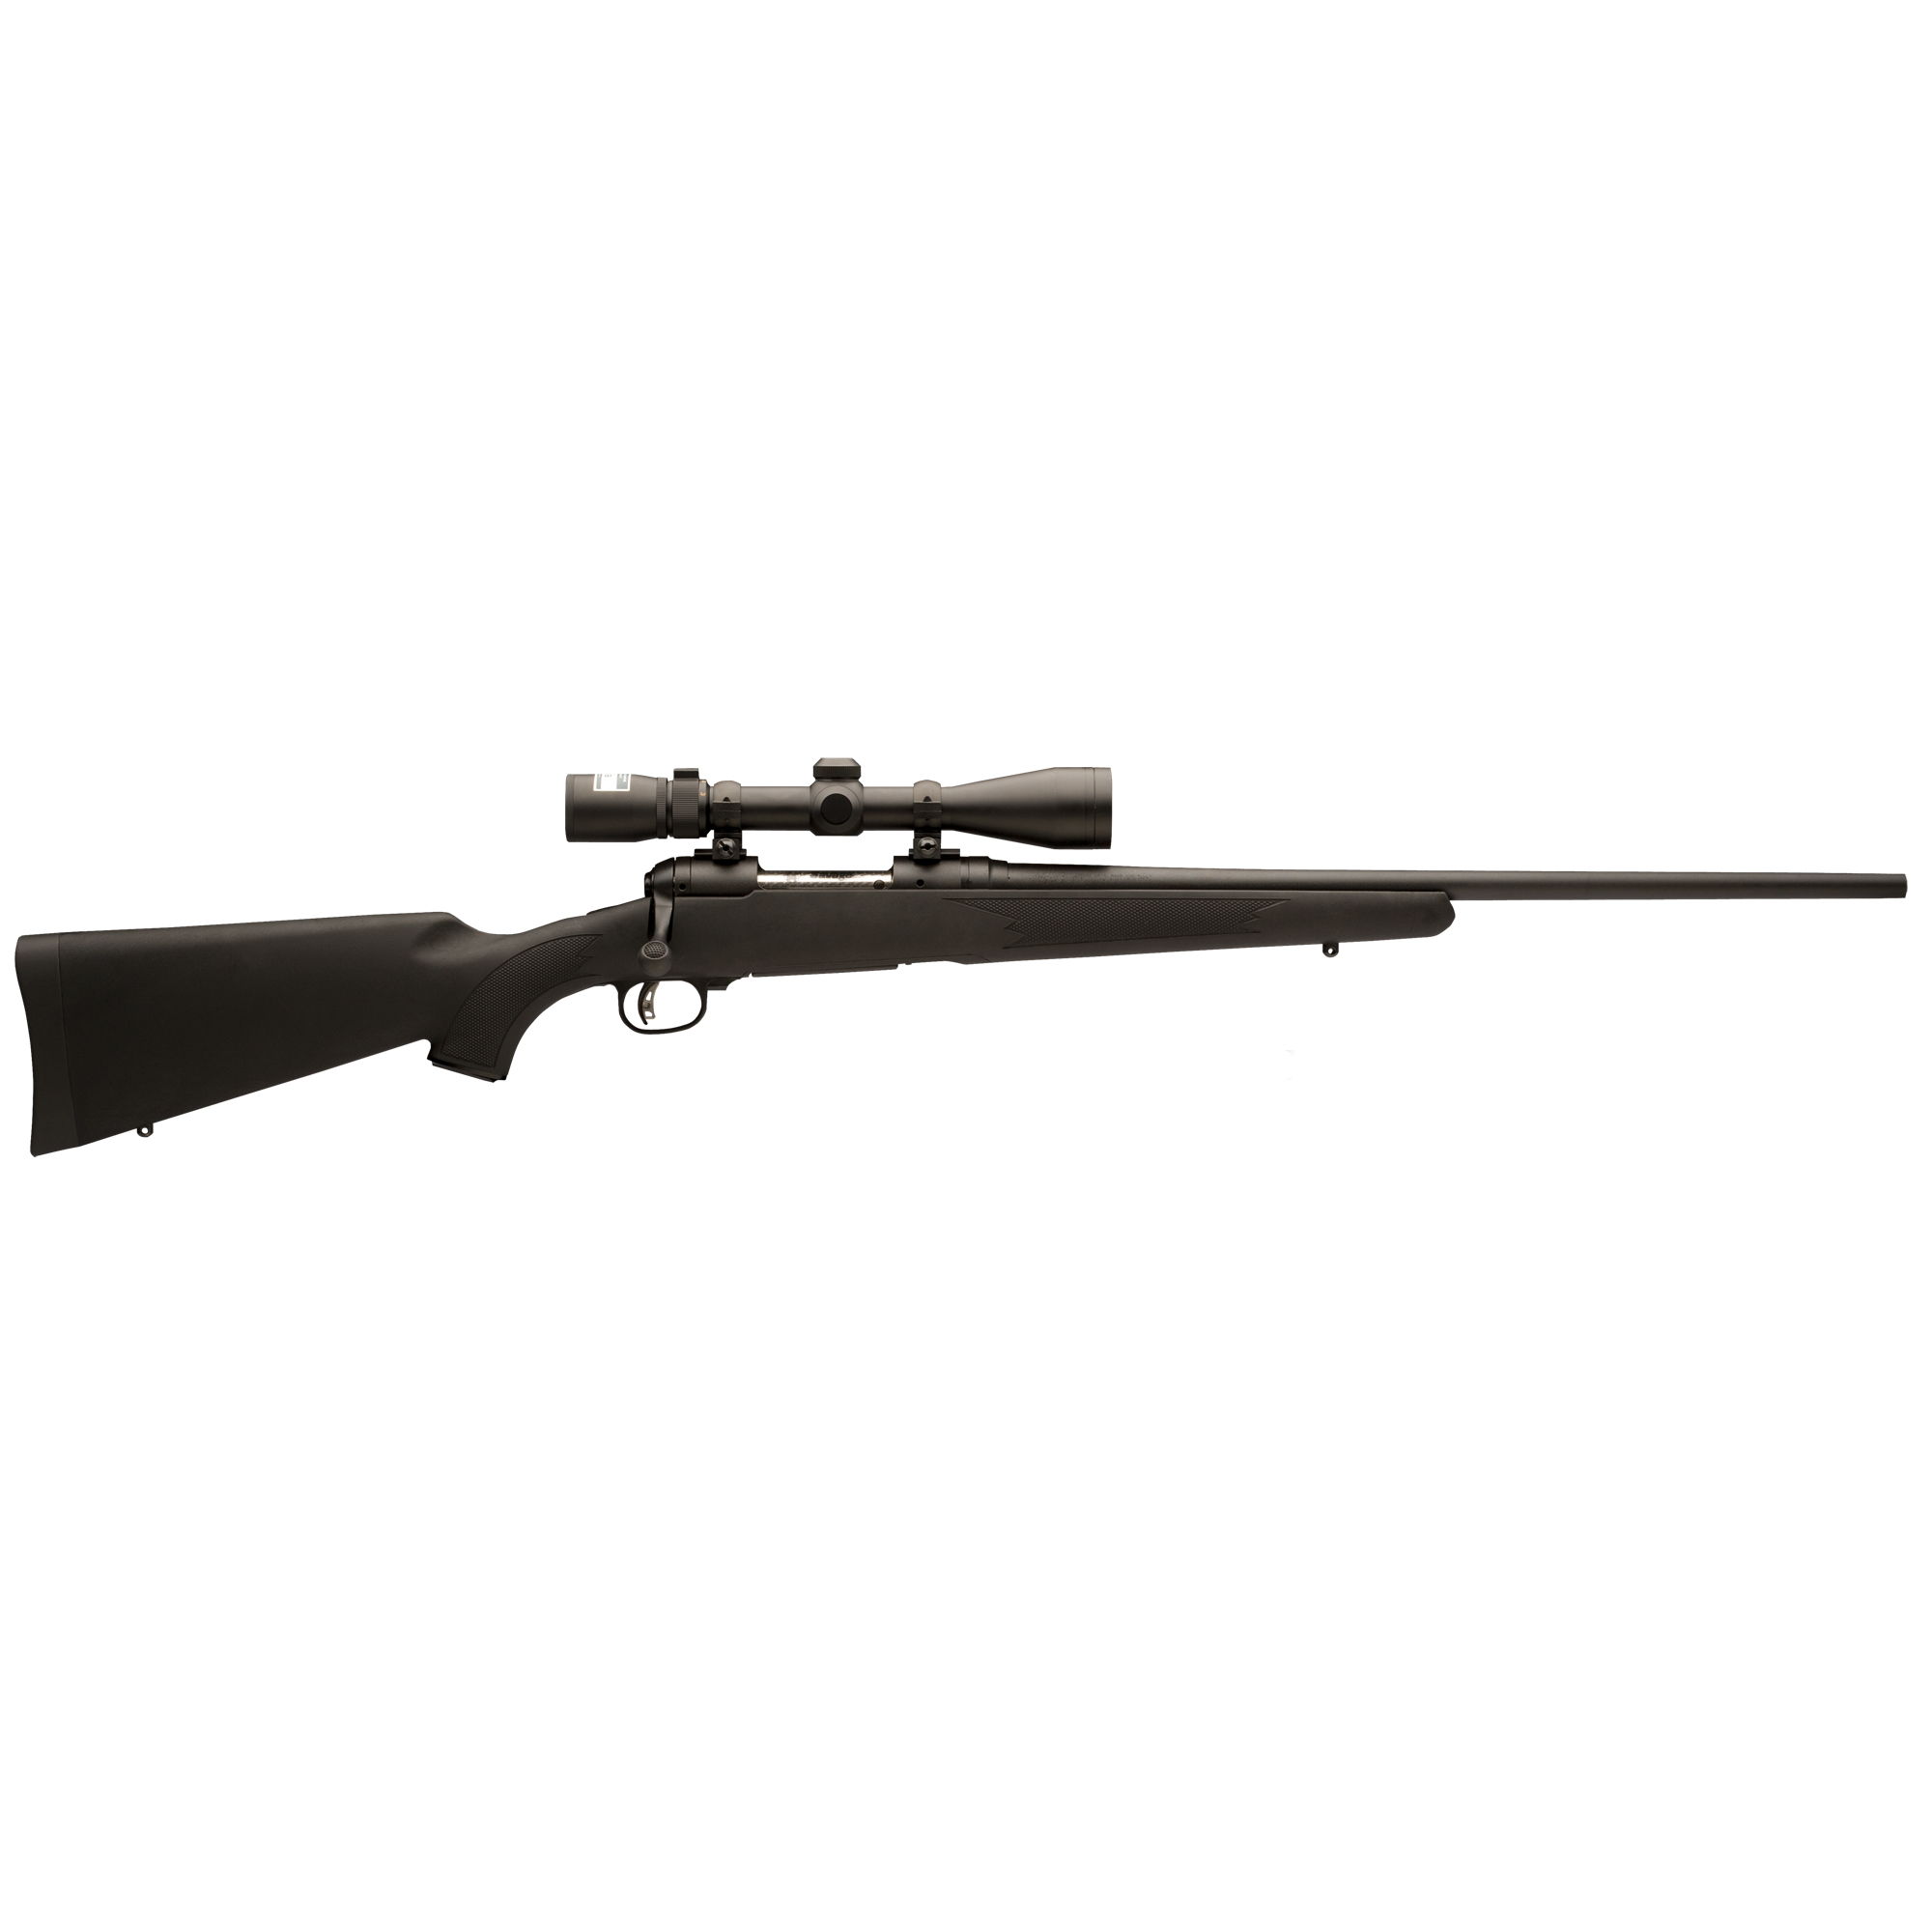 Savage Model 11 Trophy Hunter XP Centerfire Rifle Package, .300 WSM, Black